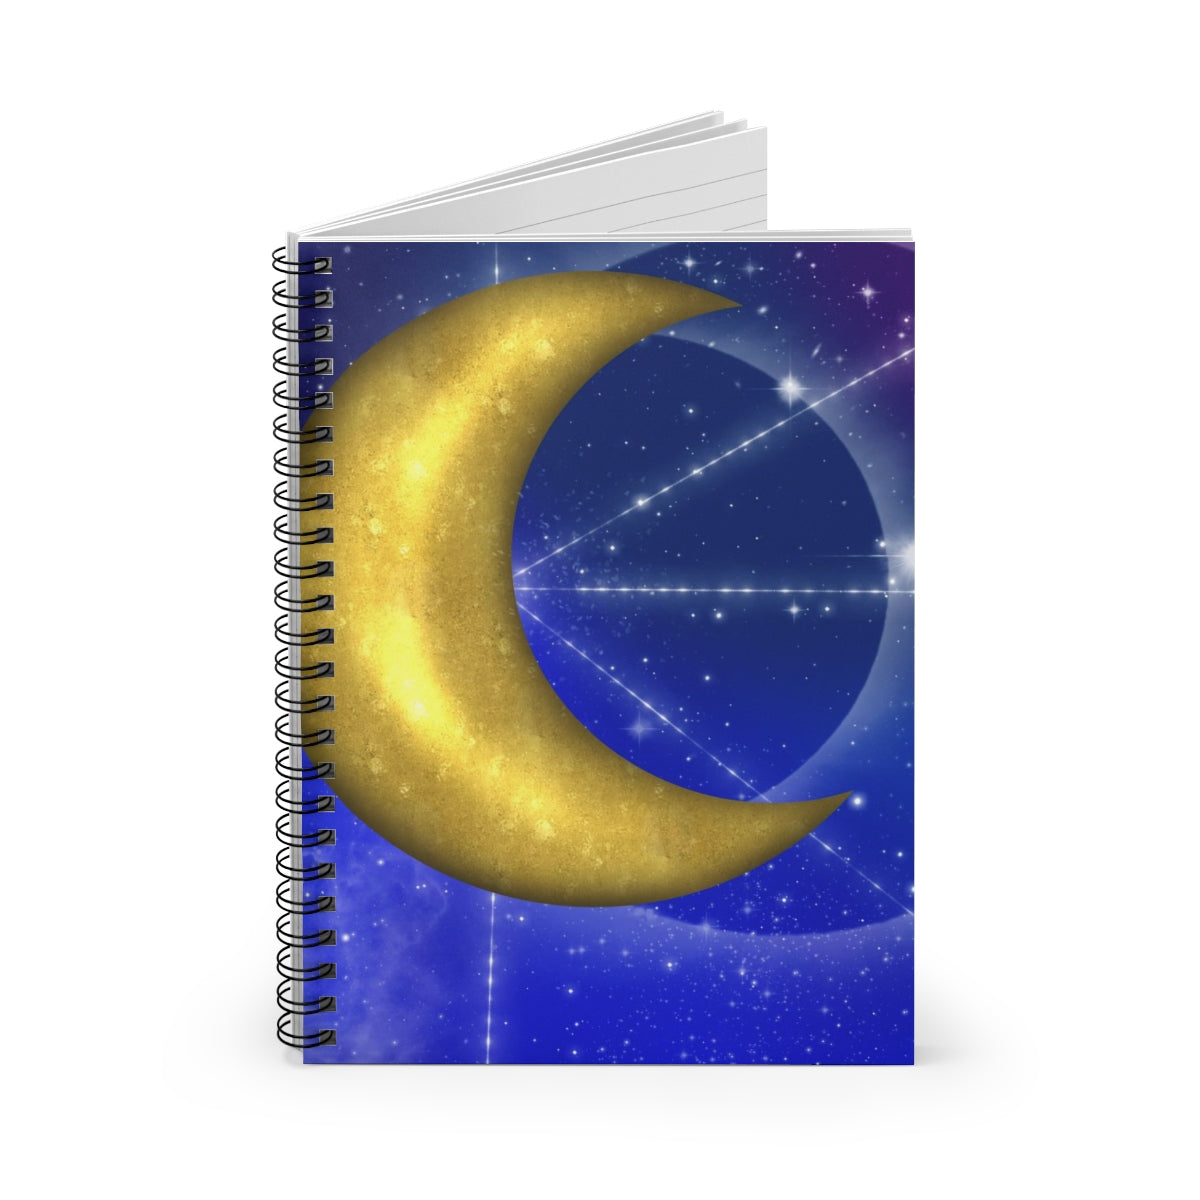 Moonpaths Spiral Notebook - Ruled Line